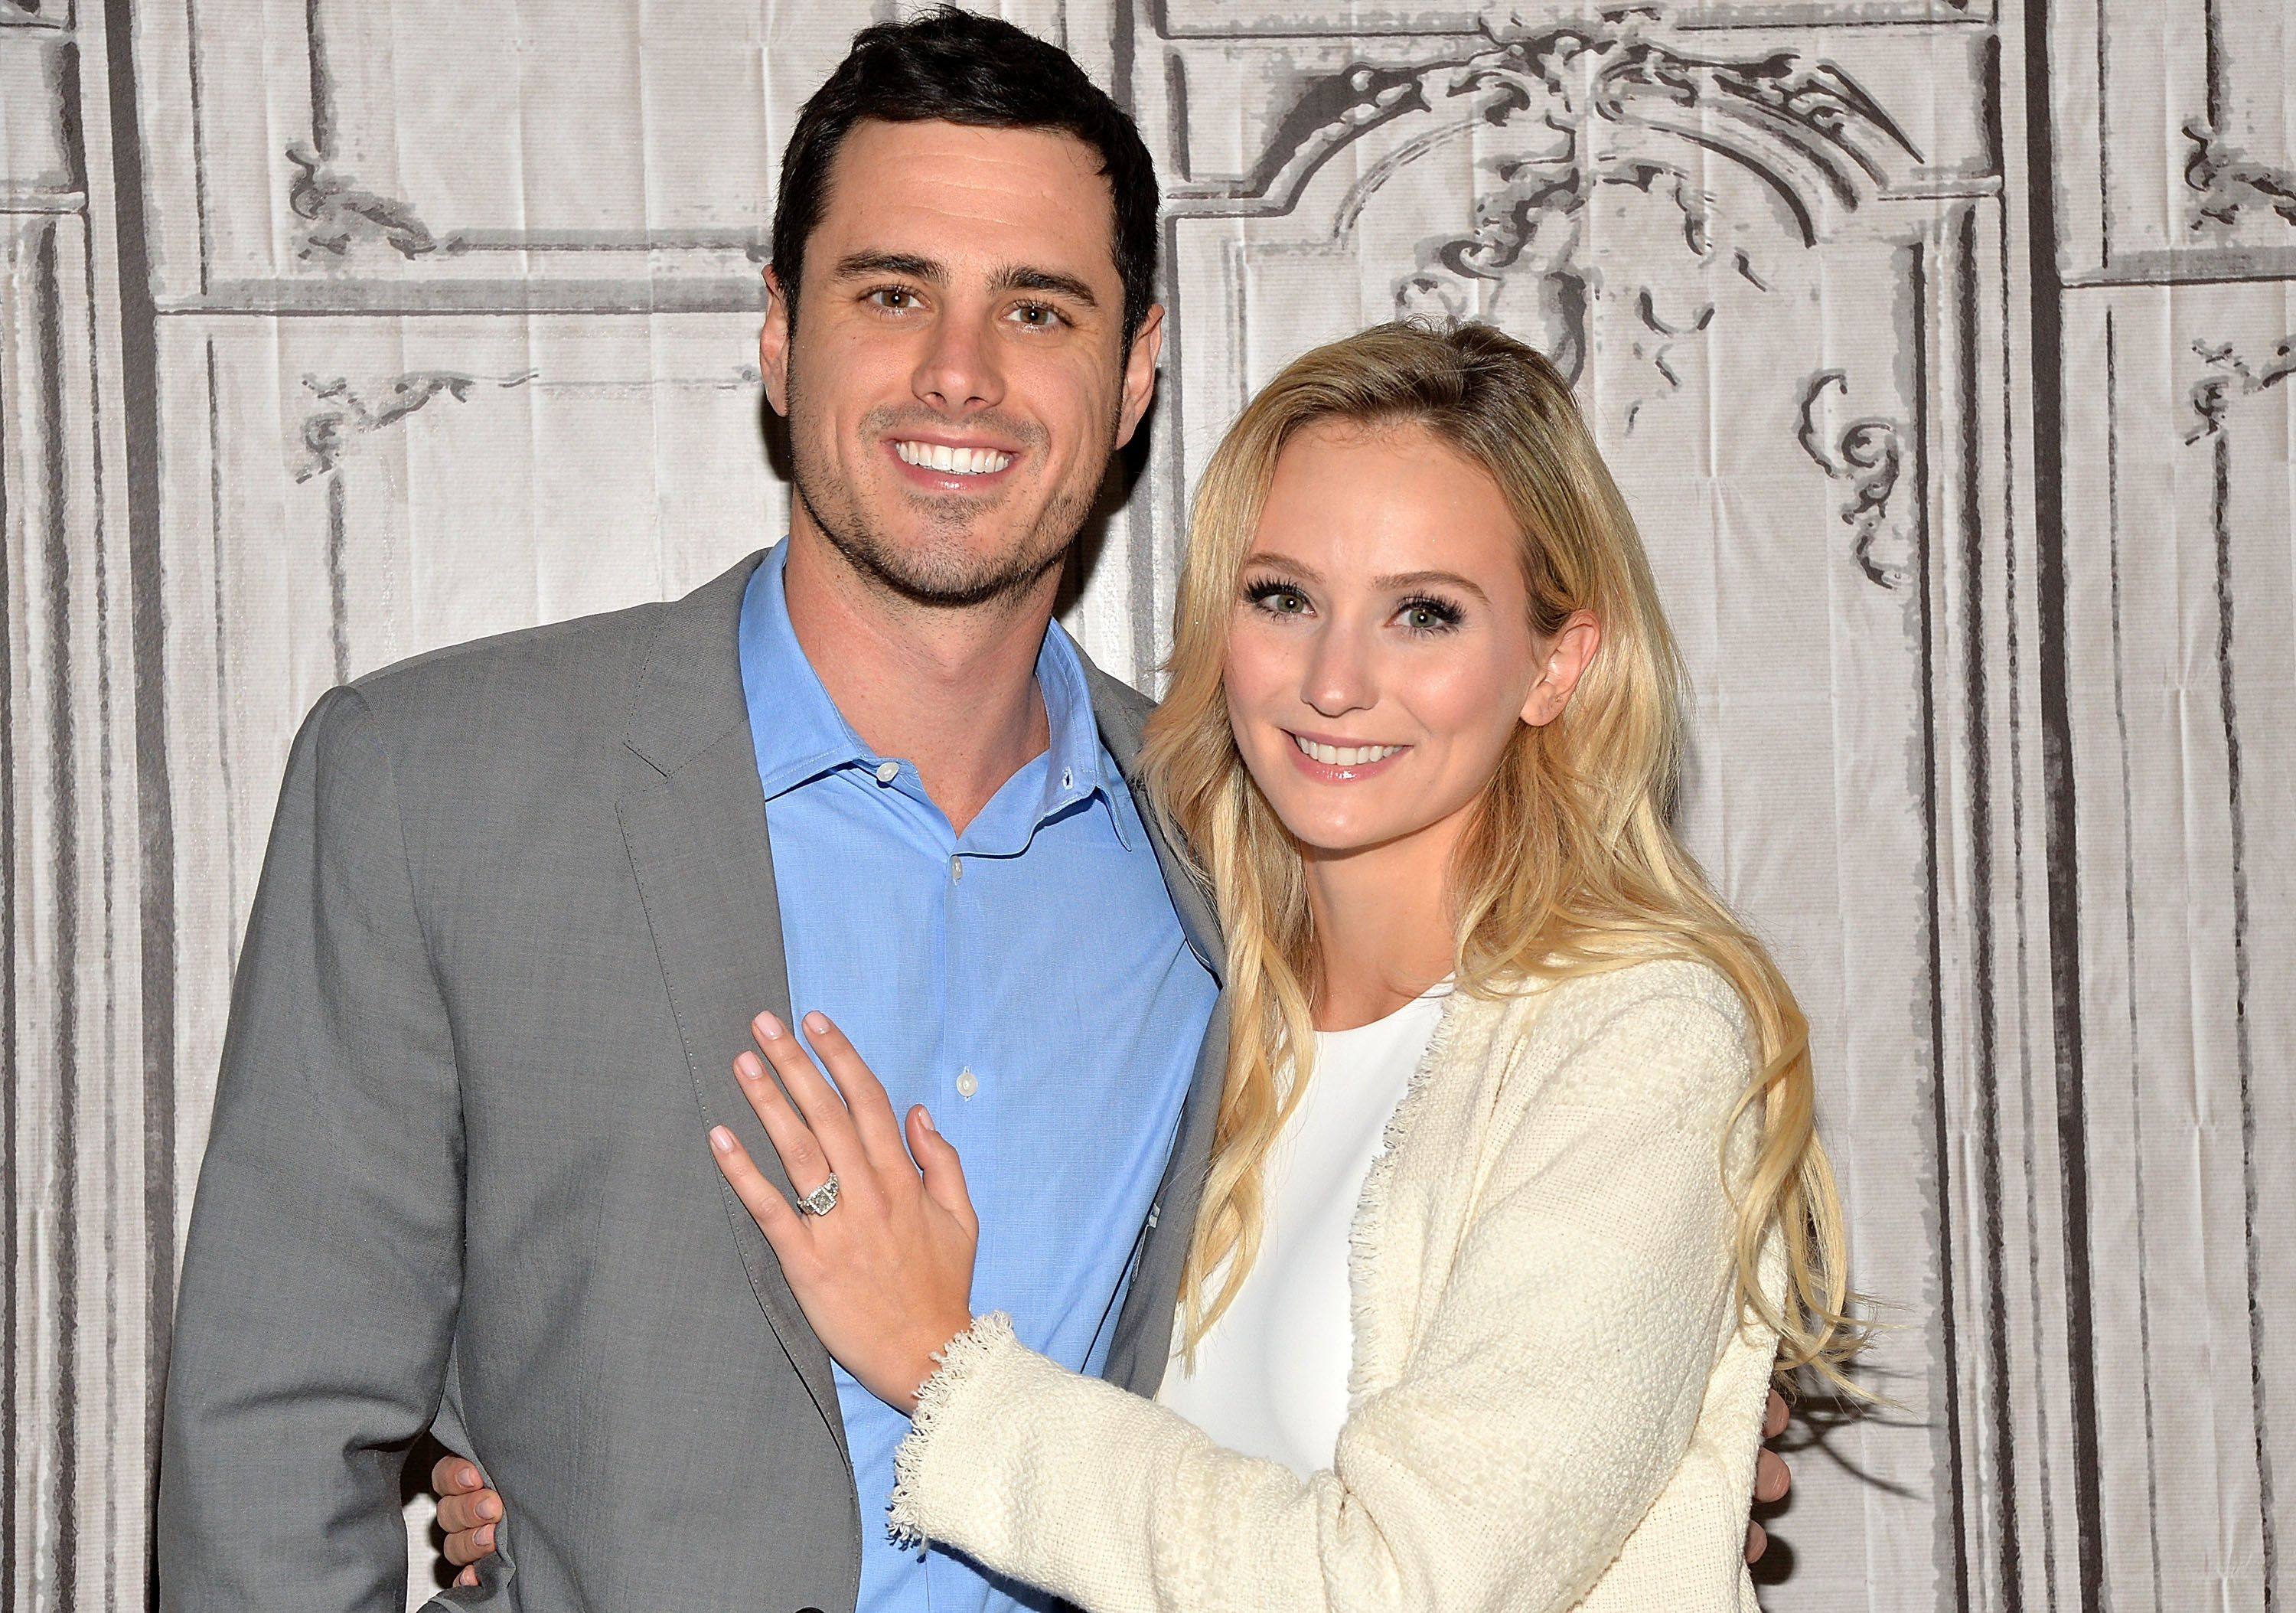 NEW YORK, NY - MARCH 15:  Bachelor Ben Higgins and Lauren Bushnell attend the AOL Build Speaker Series to discuss 'The Bachelor' at AOL Studios In New York on March 15, 2016 in New York City.  (Photo by Slaven Vlasic/Getty Images)